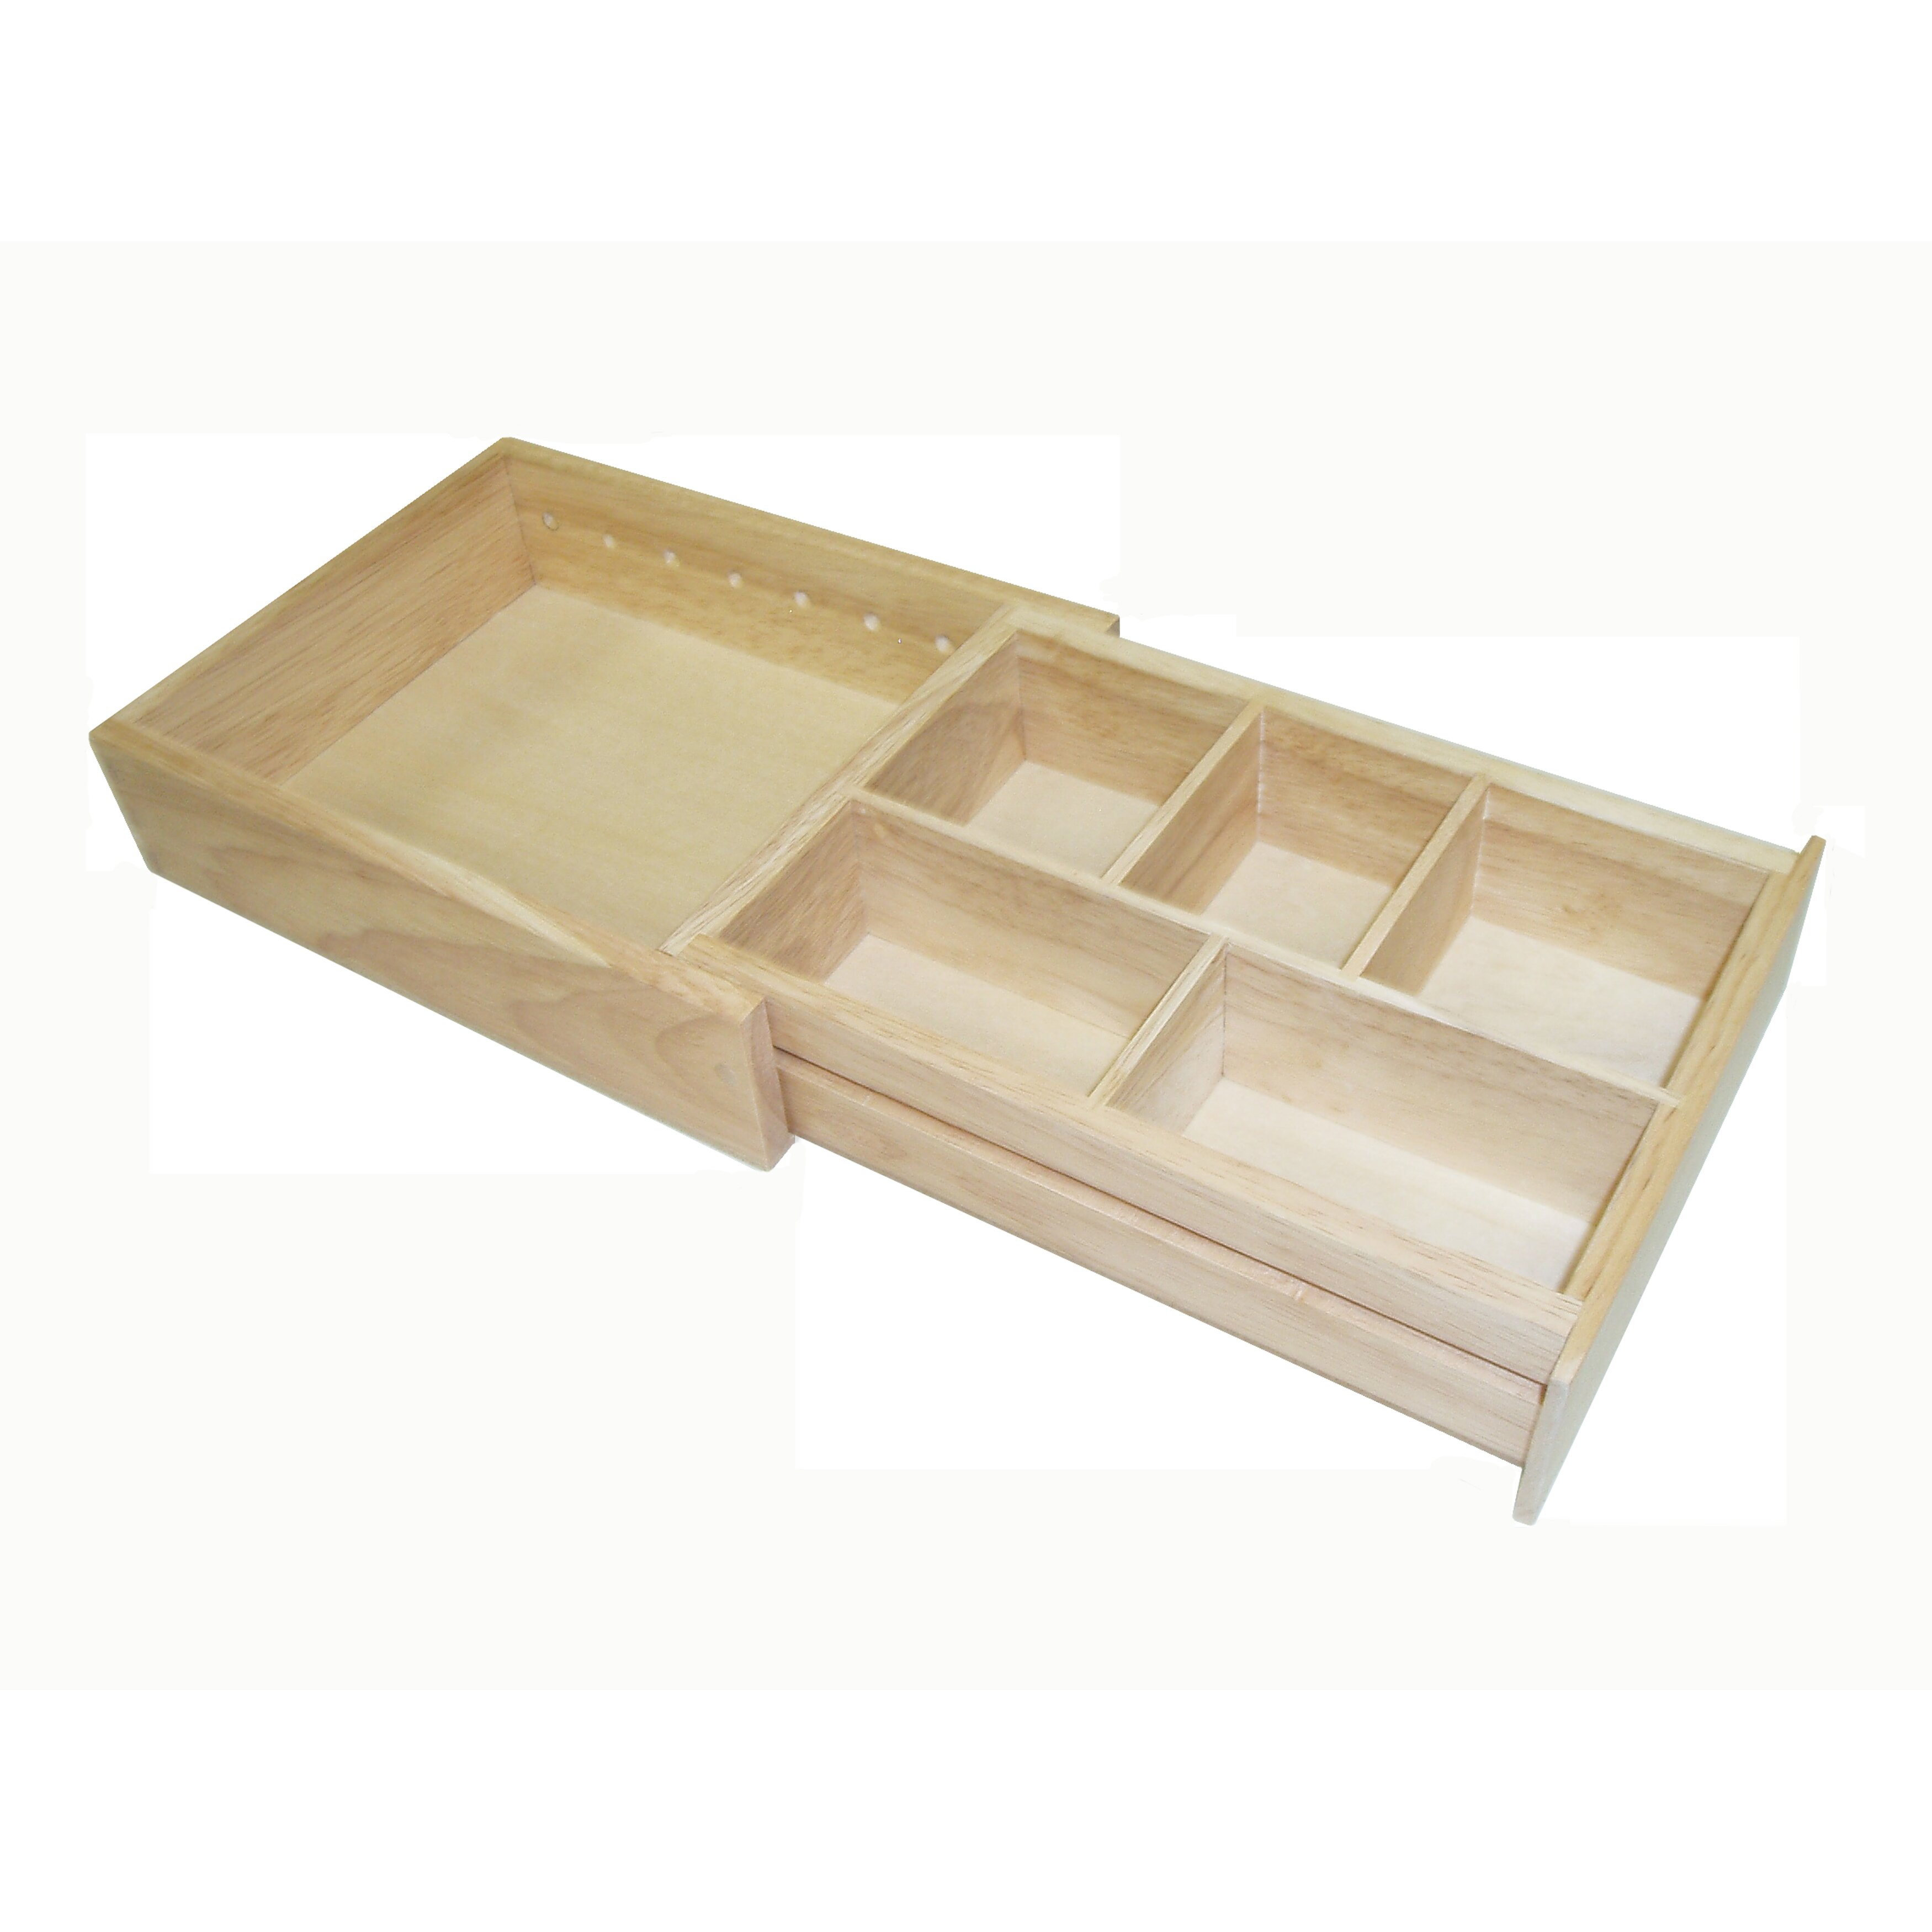 Marvelous photograph of Axis International Wood Expandable Drawer Organizer & Reviews  with #8C703F color and 3500x3500 pixels